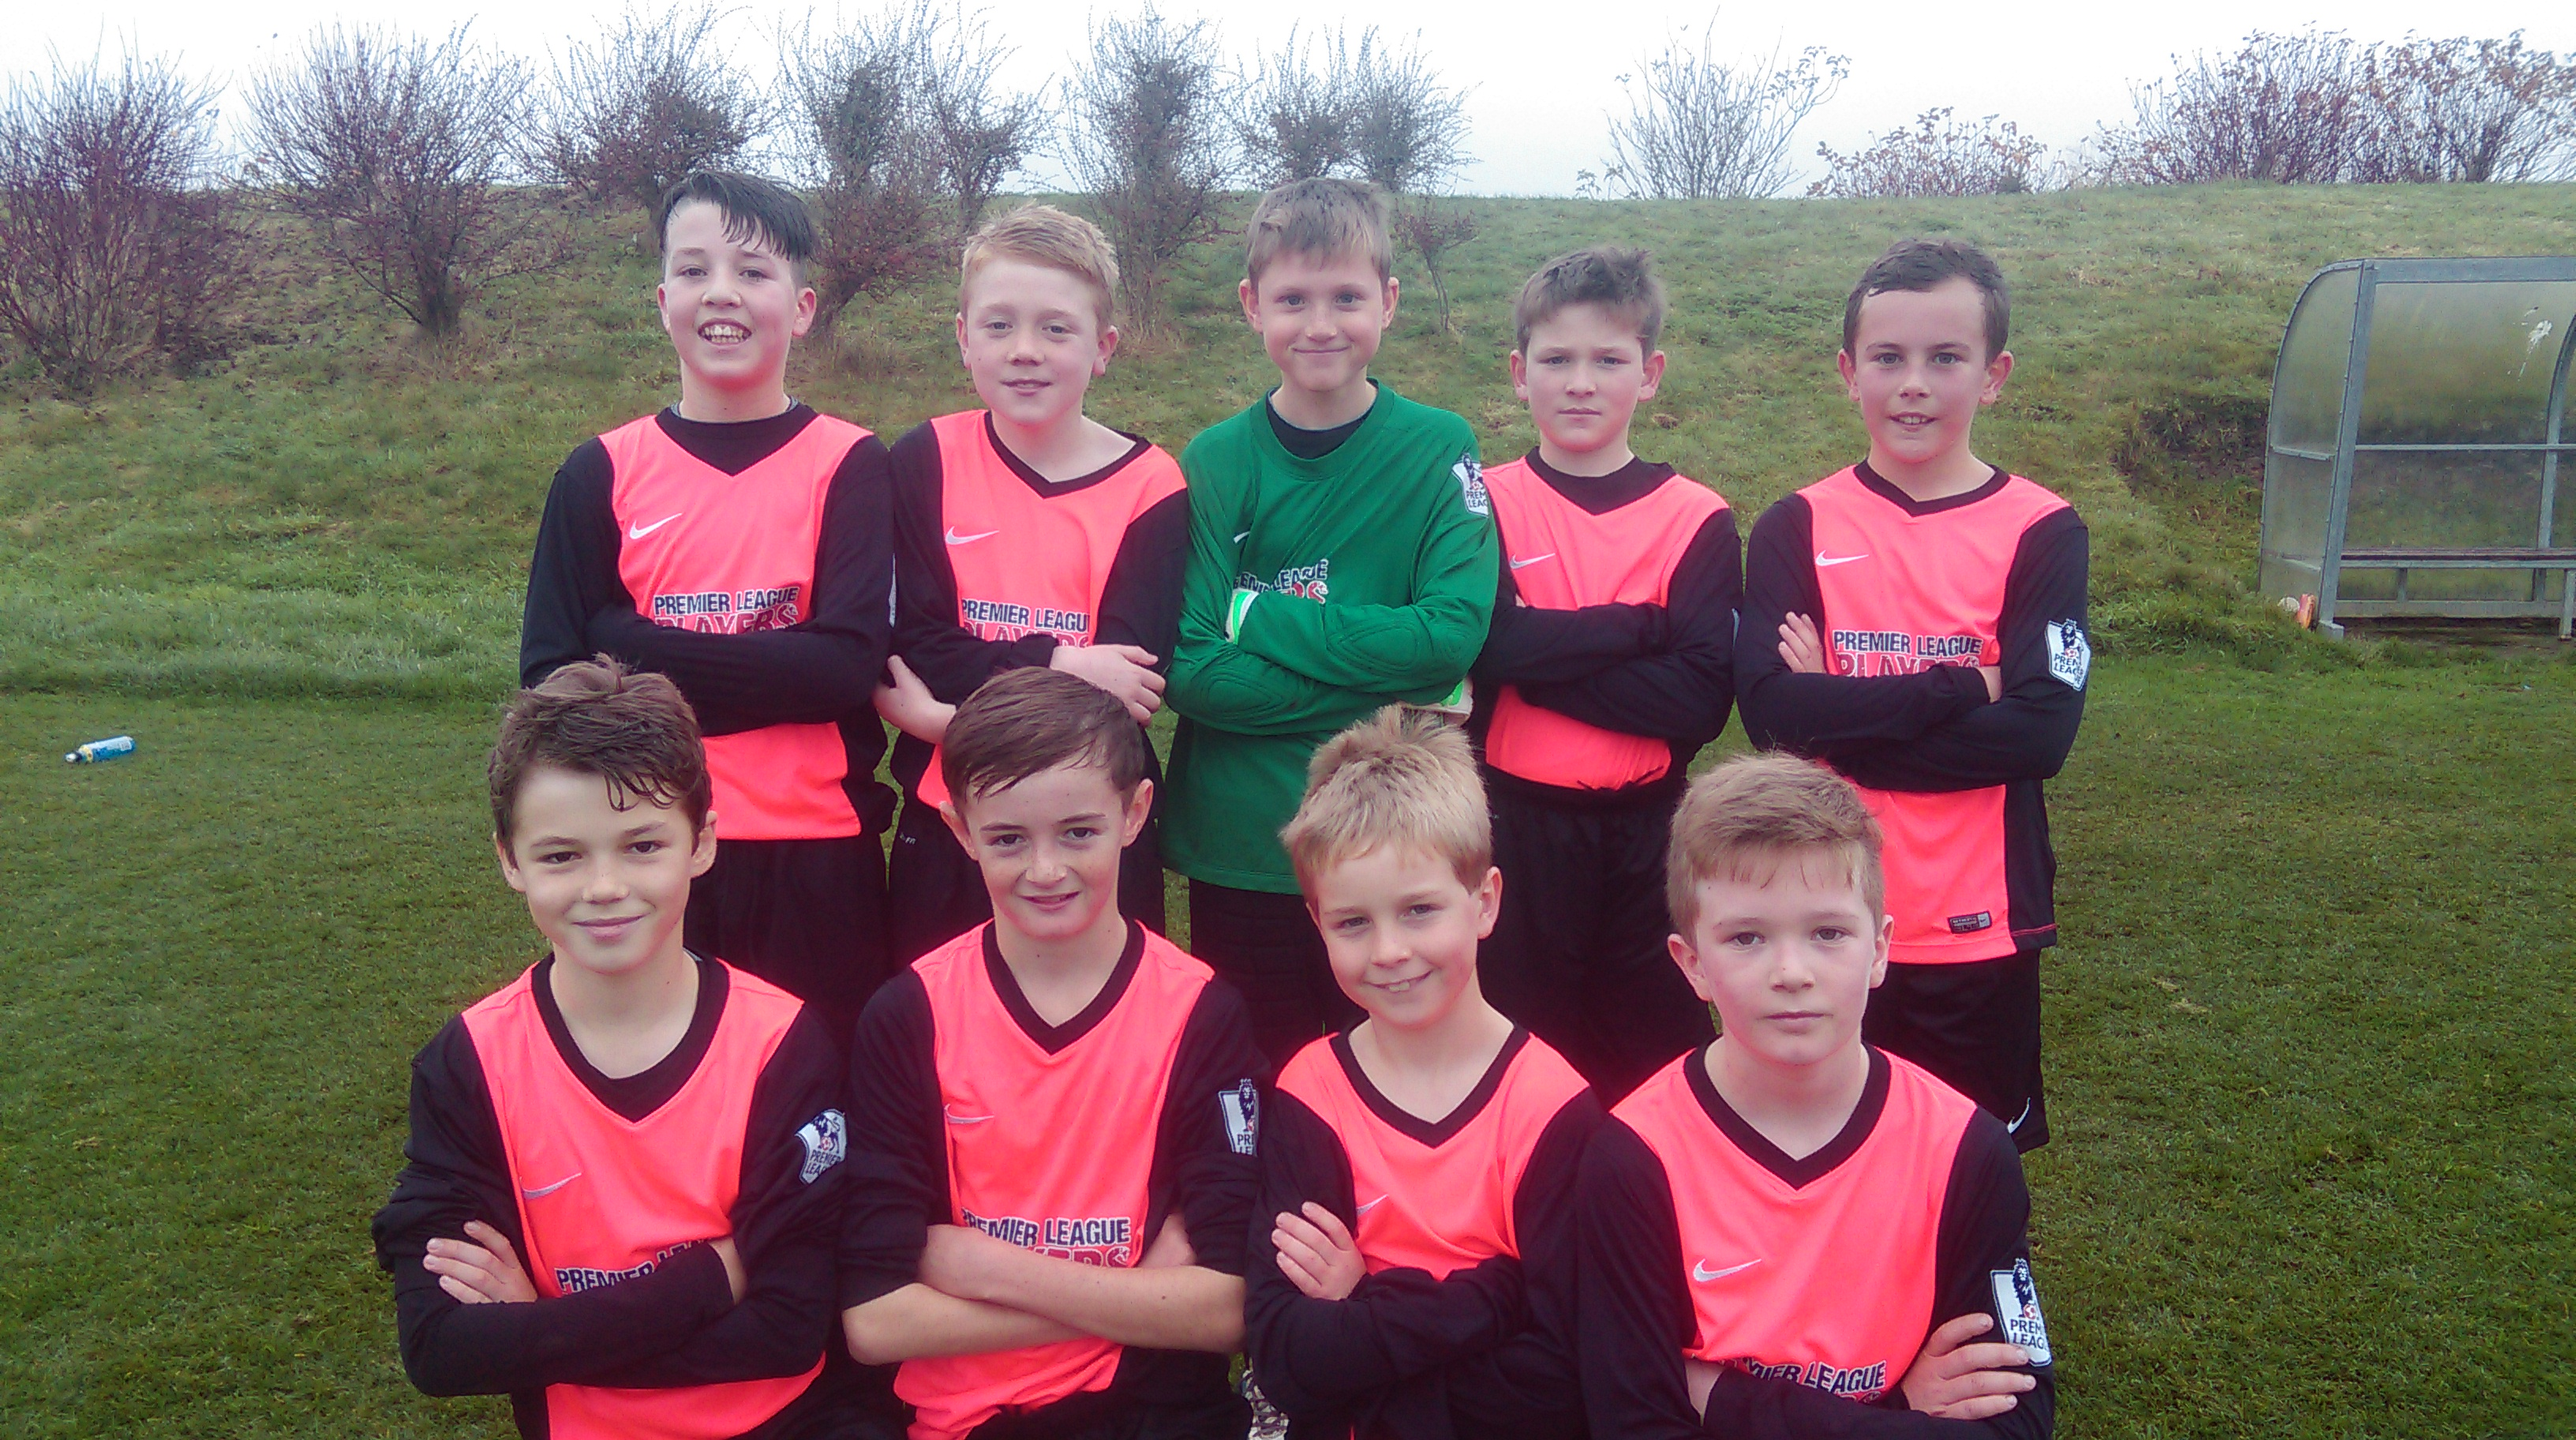 Durham City Schools Sports Partnership District Football 7a Side